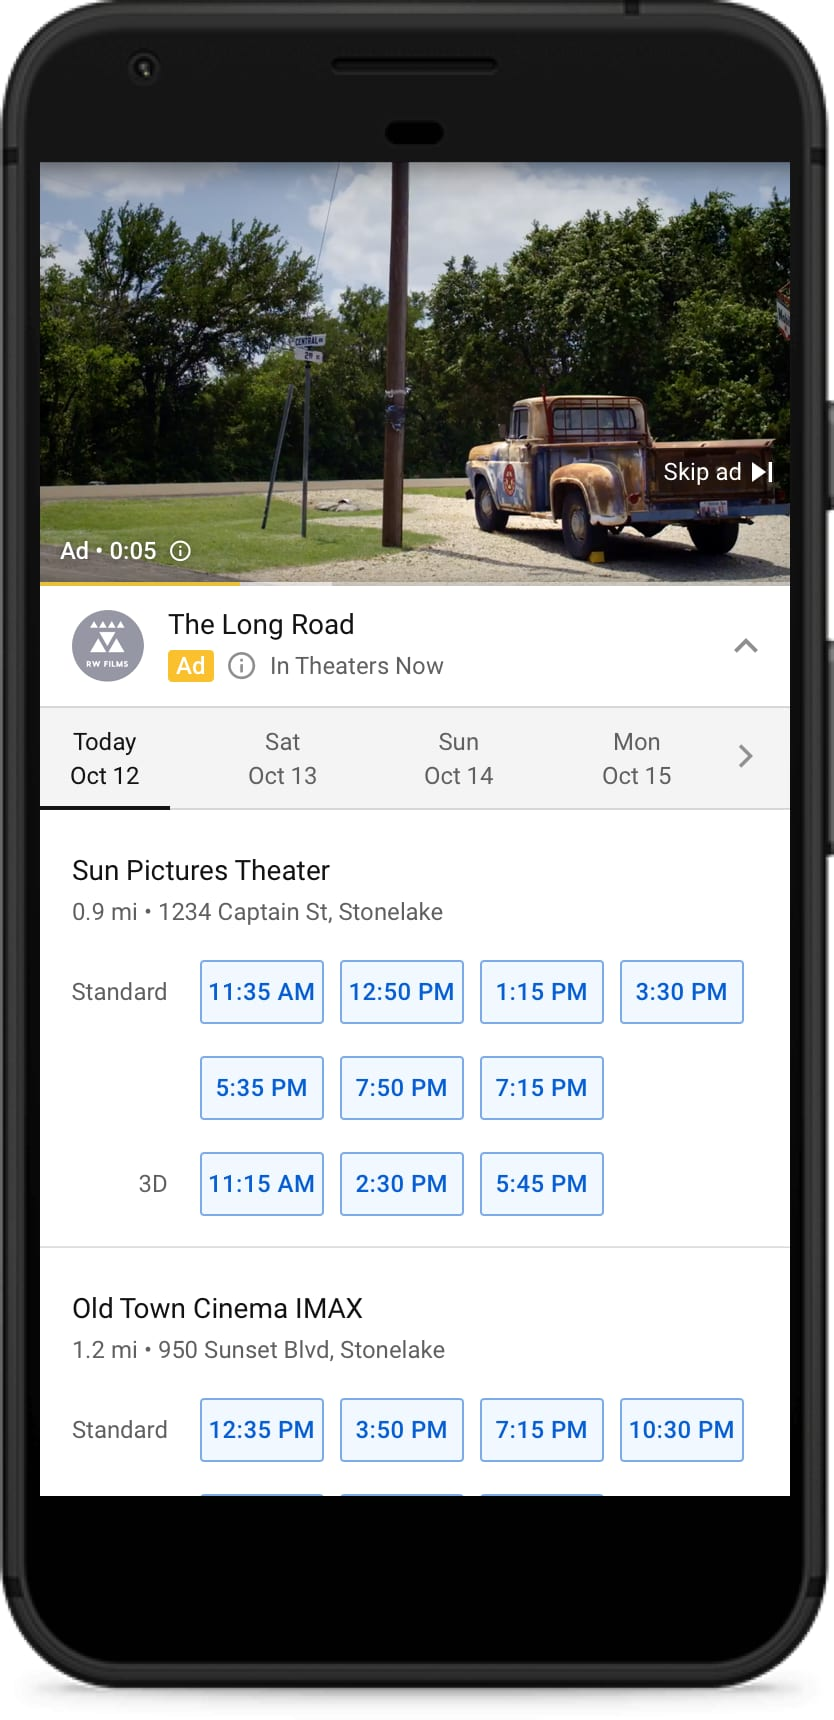 movie showtimes displayed on smartphone app